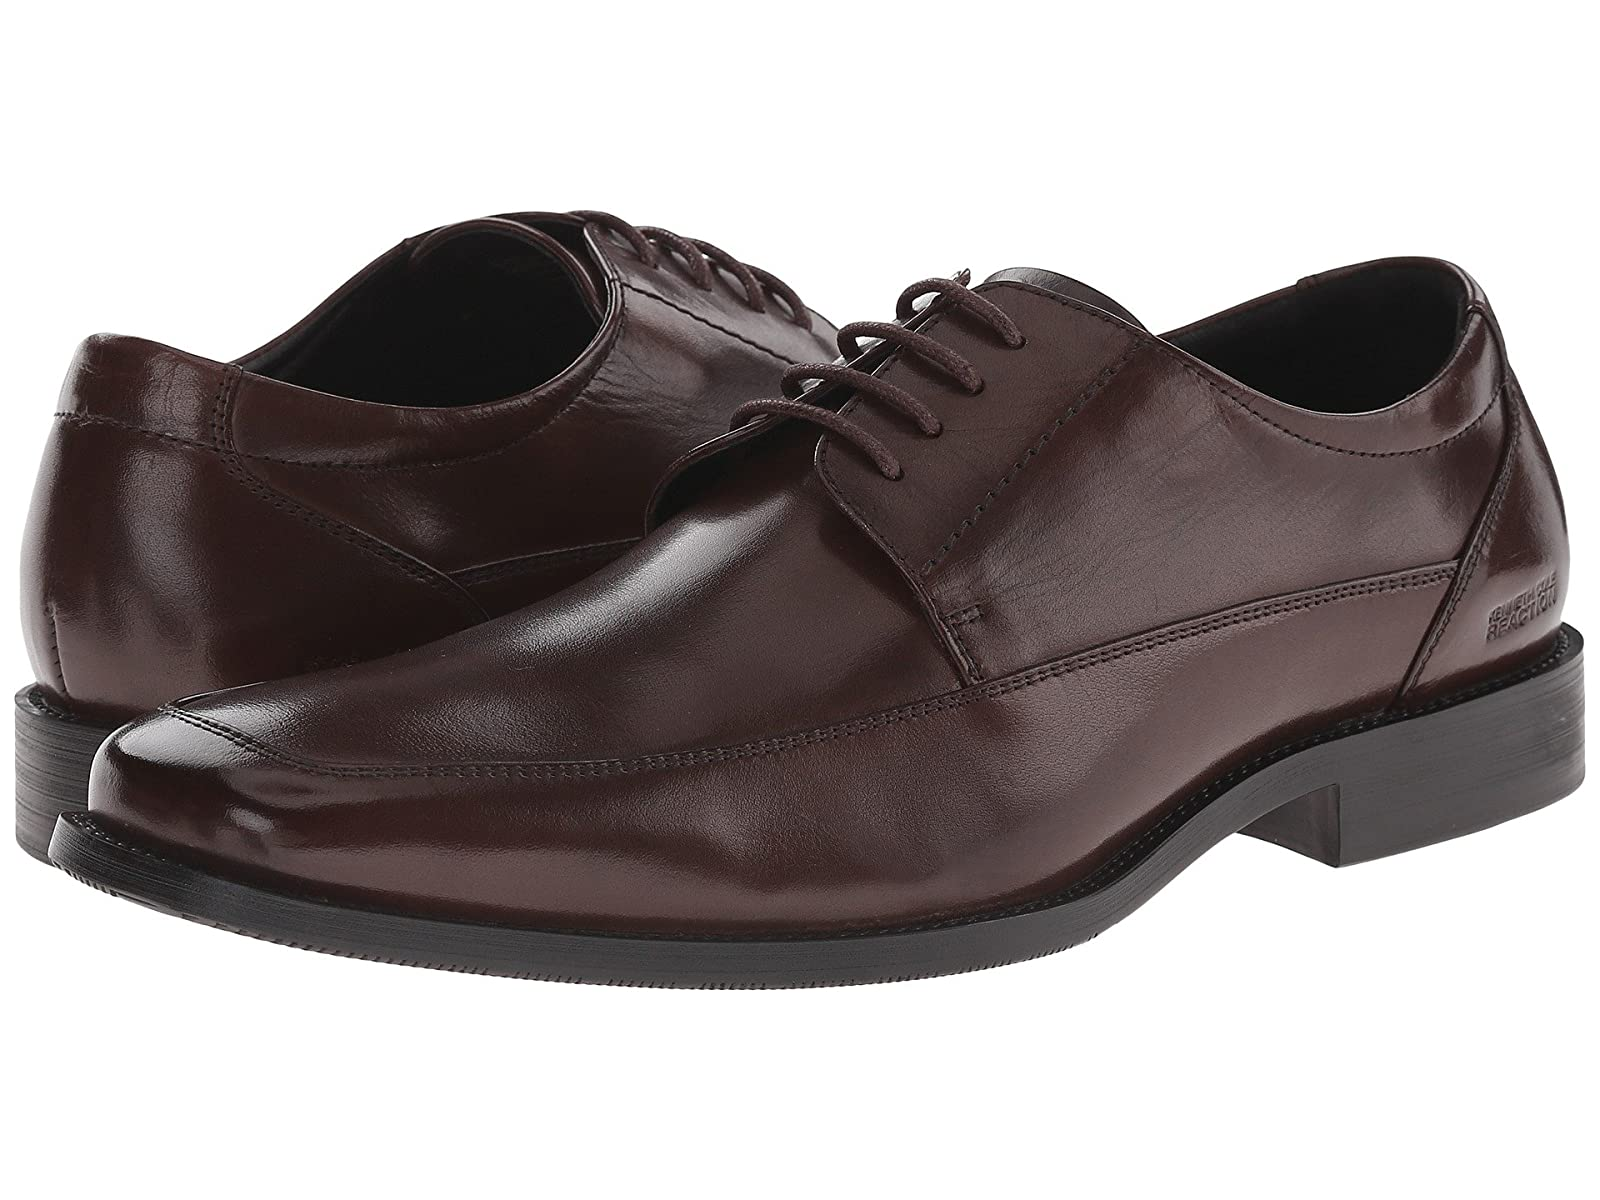 Kenneth Cole Reaction Bottom LineCheap and distinctive eye-catching shoes